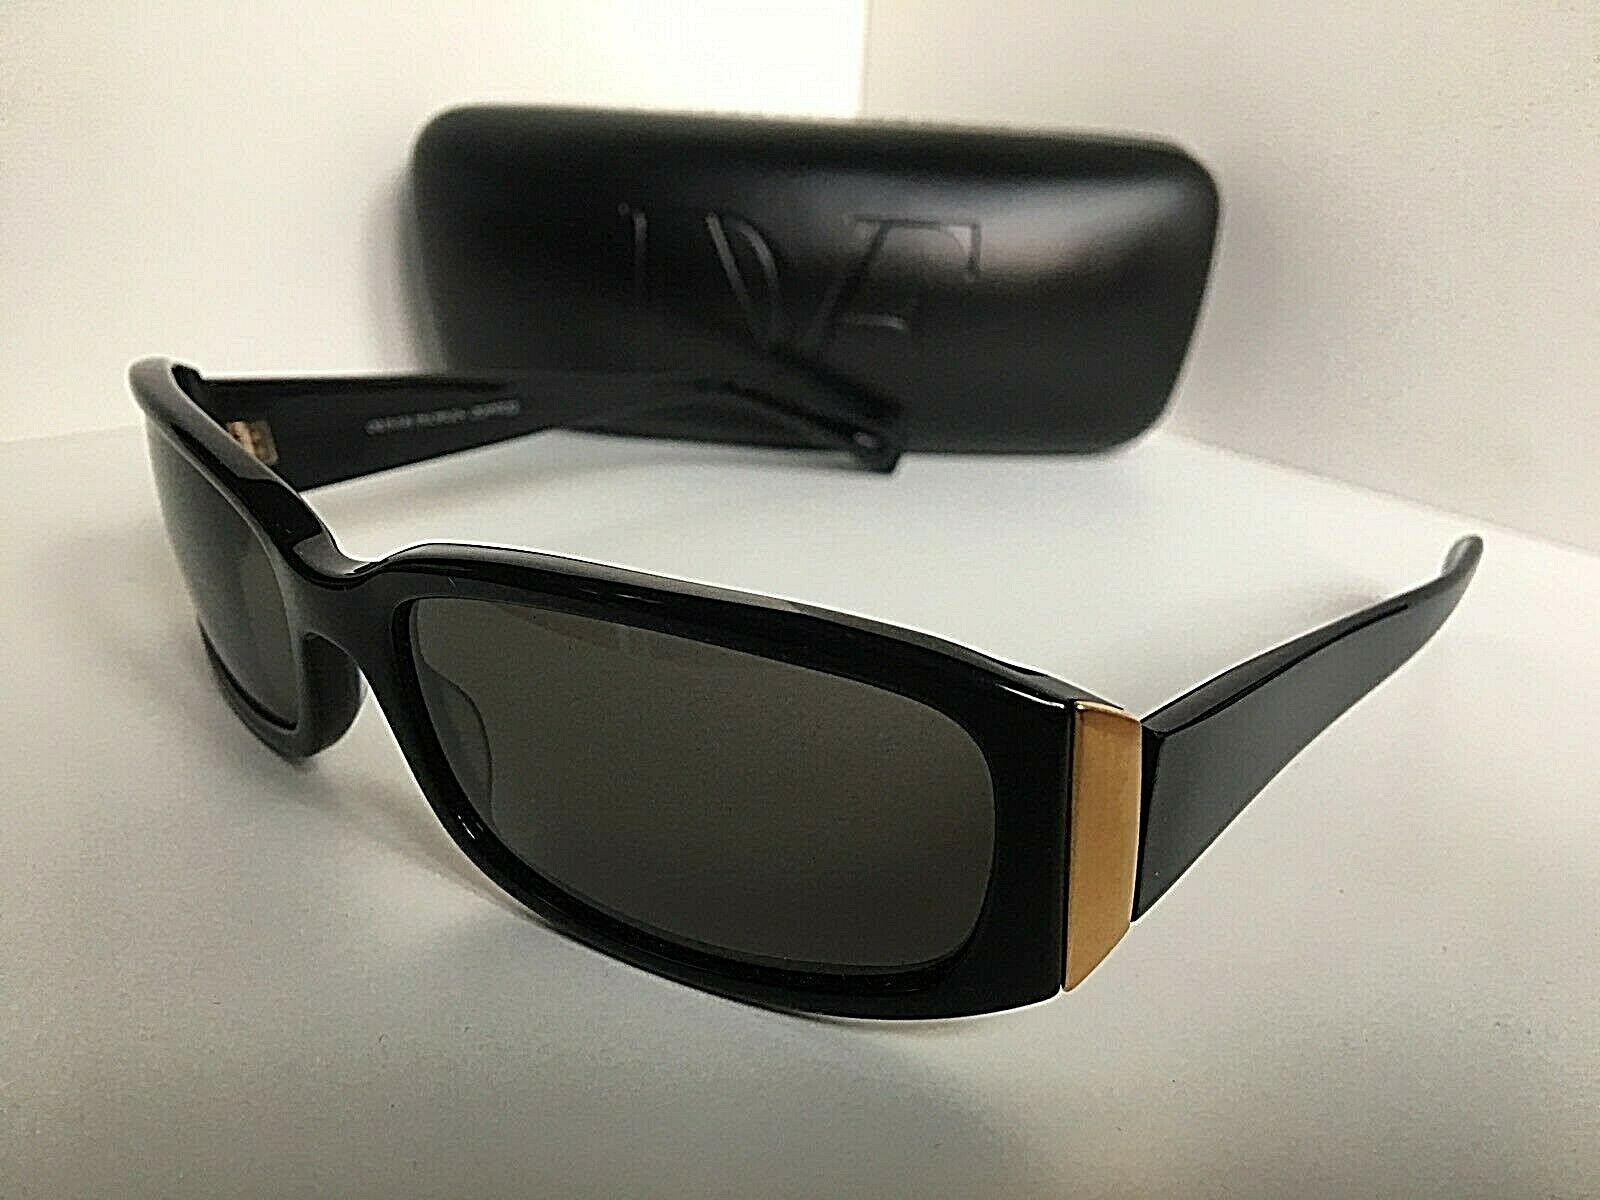 New Polarized Oliver Peoples Black 57mm Women's Sunglasses Japan